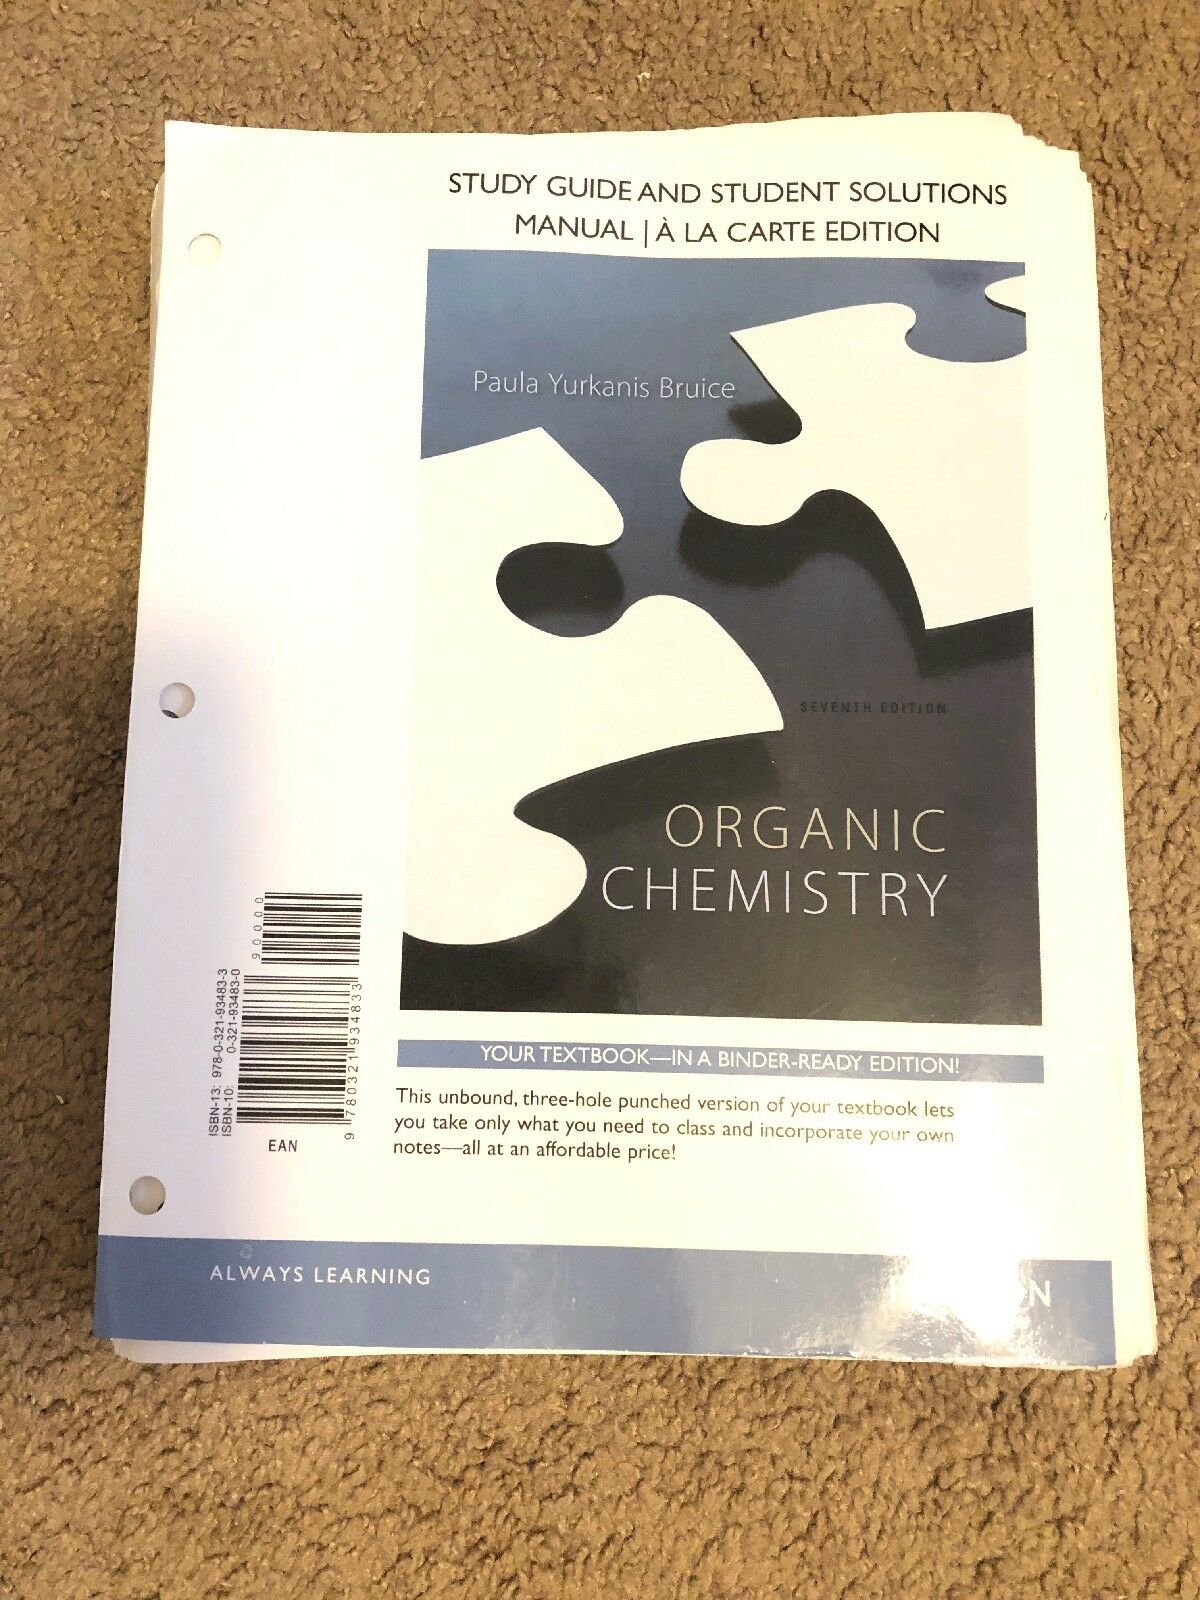 Study Guide and Student's Solutions Manual for Organic Chemistry by Paula  Yurkanis Bruice (2013, Paperback) | eBay